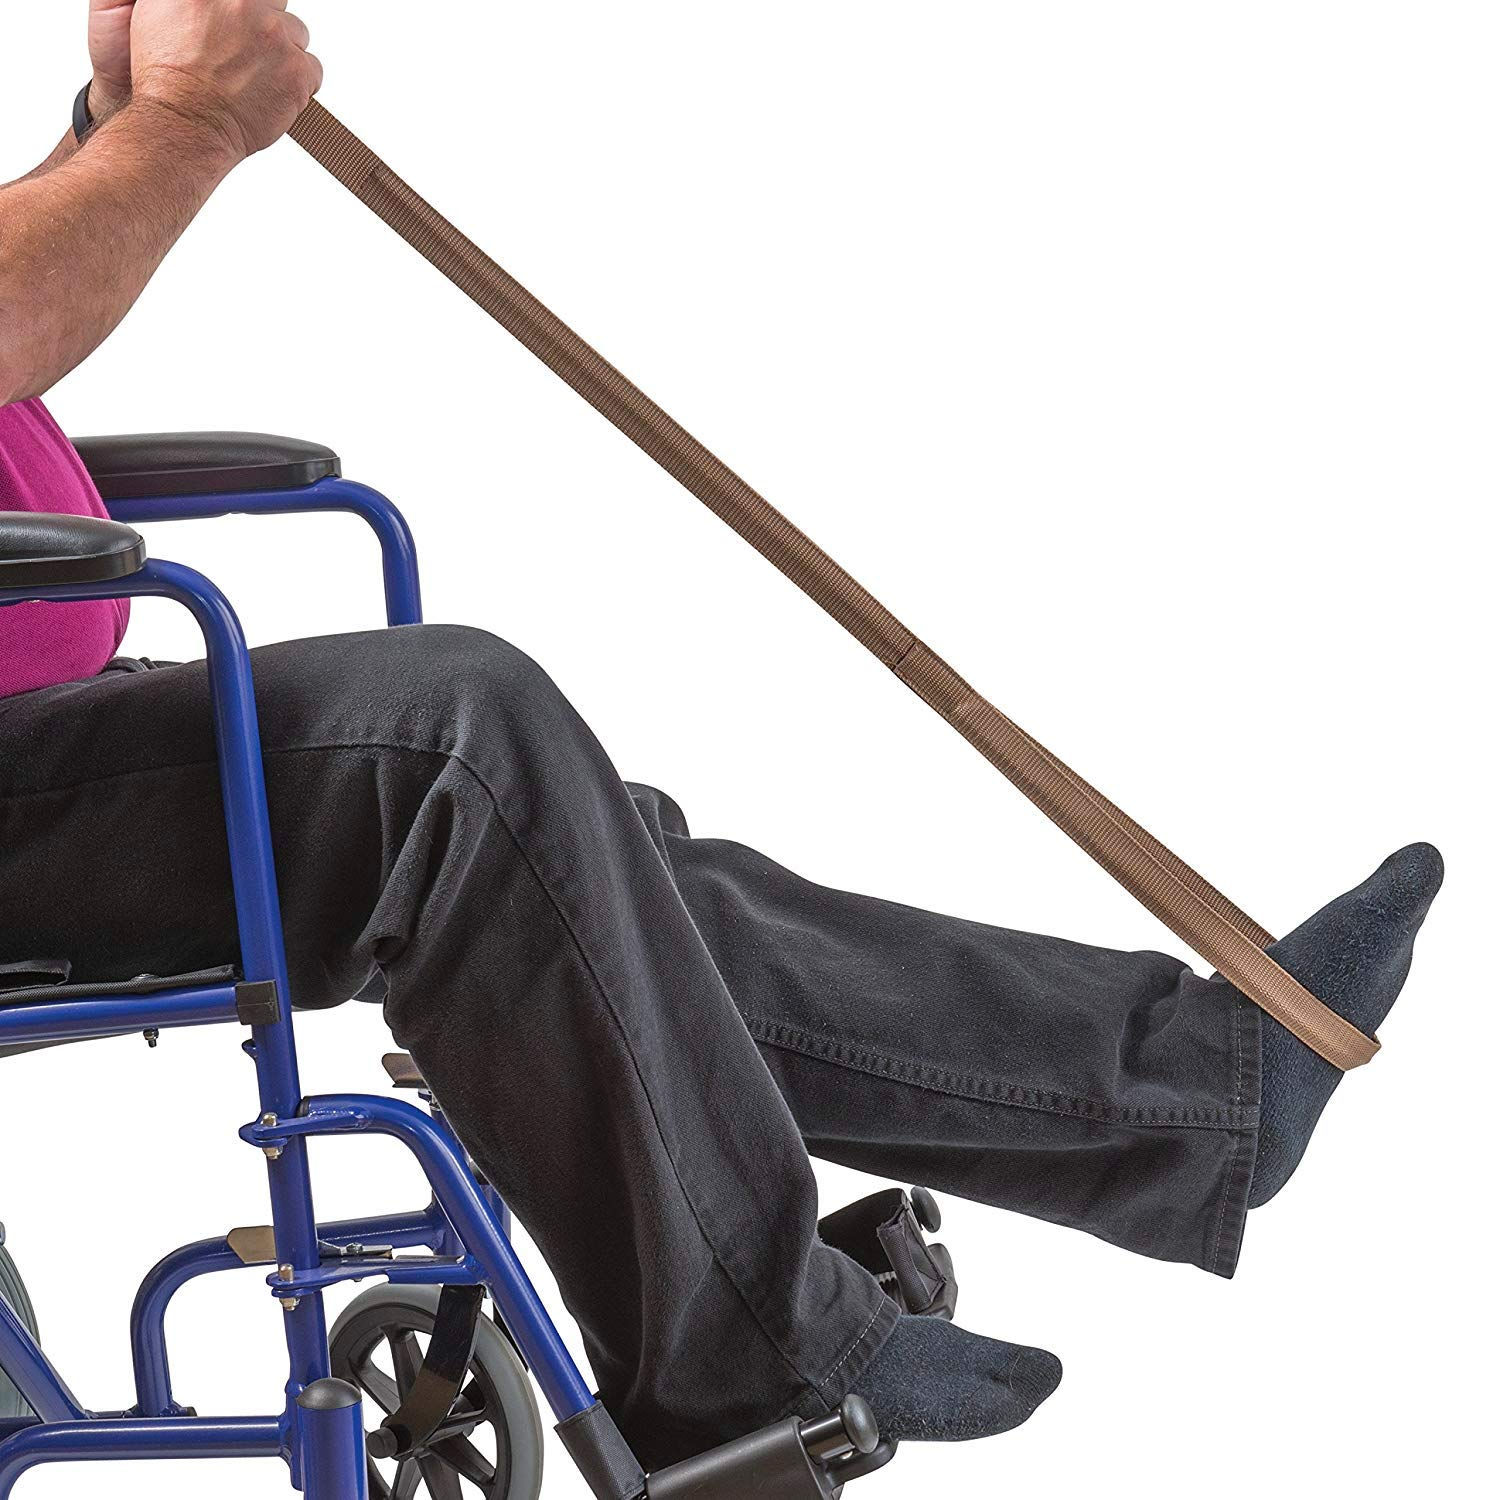 Leg Lifter Strap helps Increase Mobility and Maneuverability on Injured,  Elderly or Disabled with Foot Loop